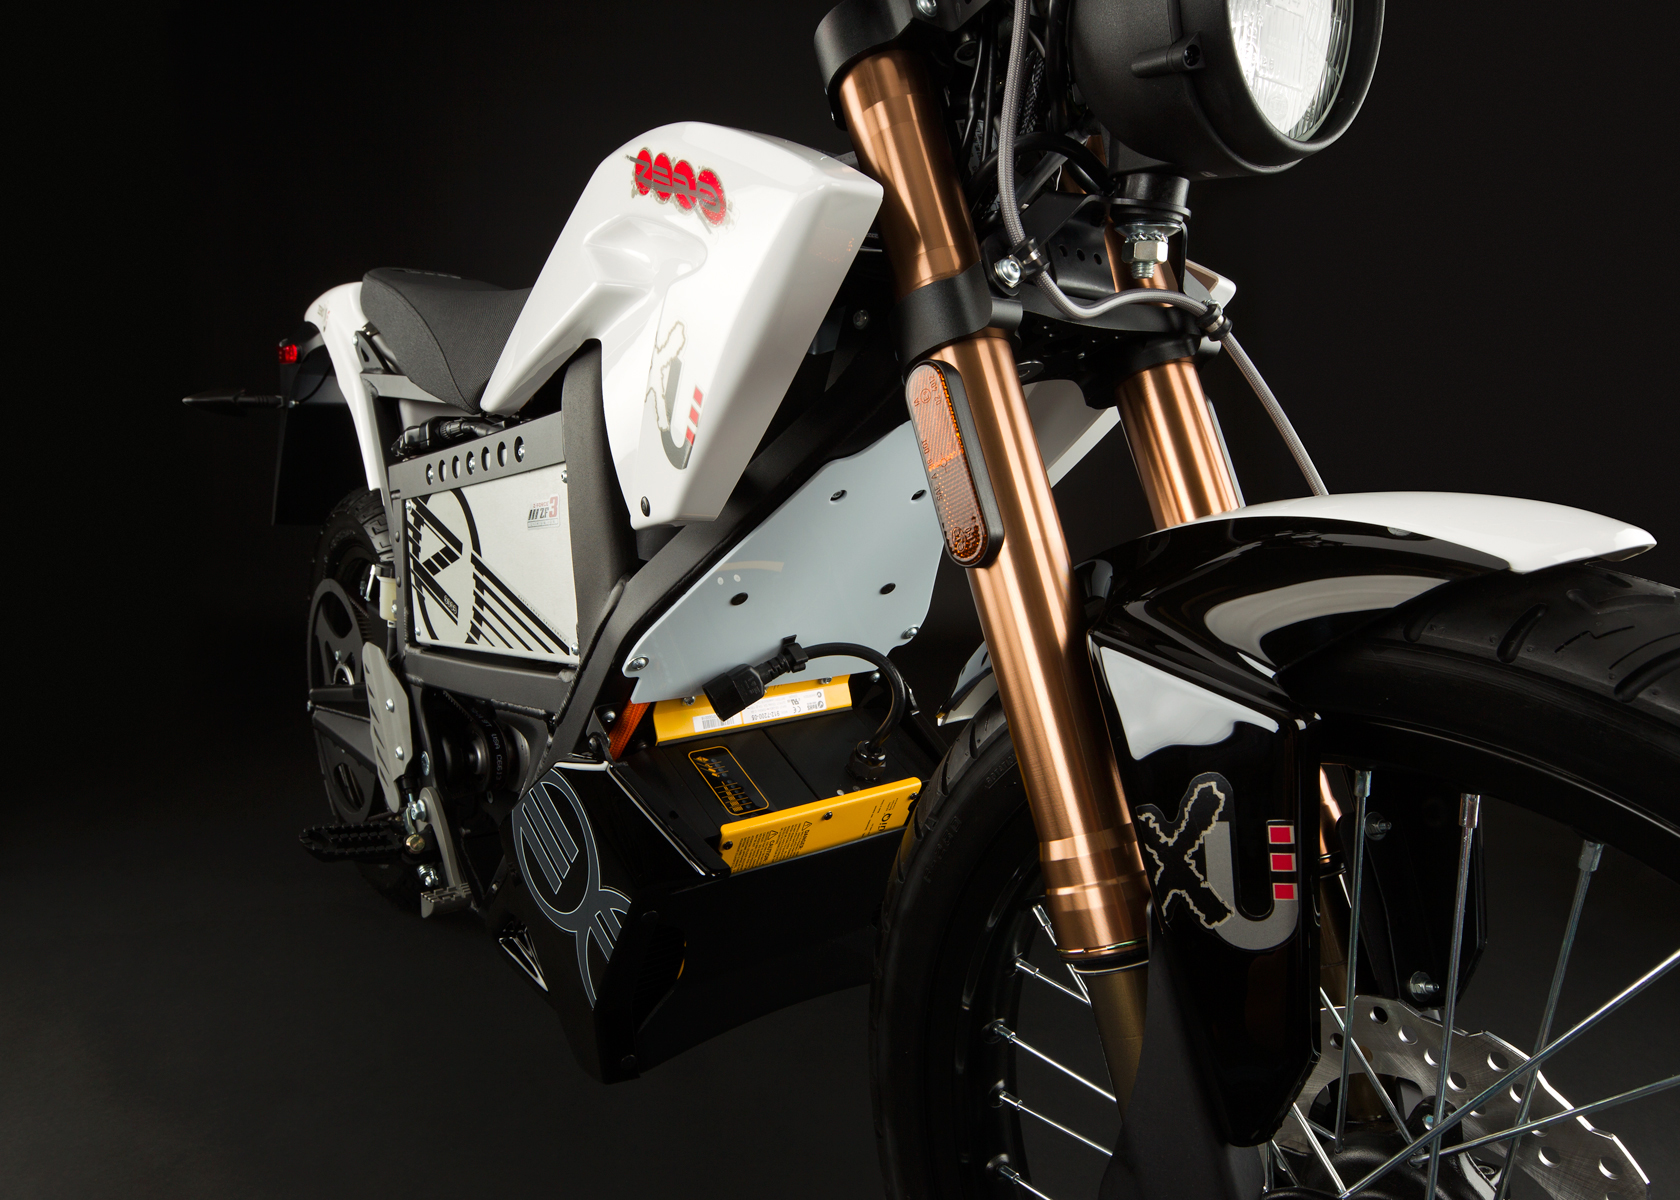 2012 Zero XU Electric Motorcycle: Front Fork